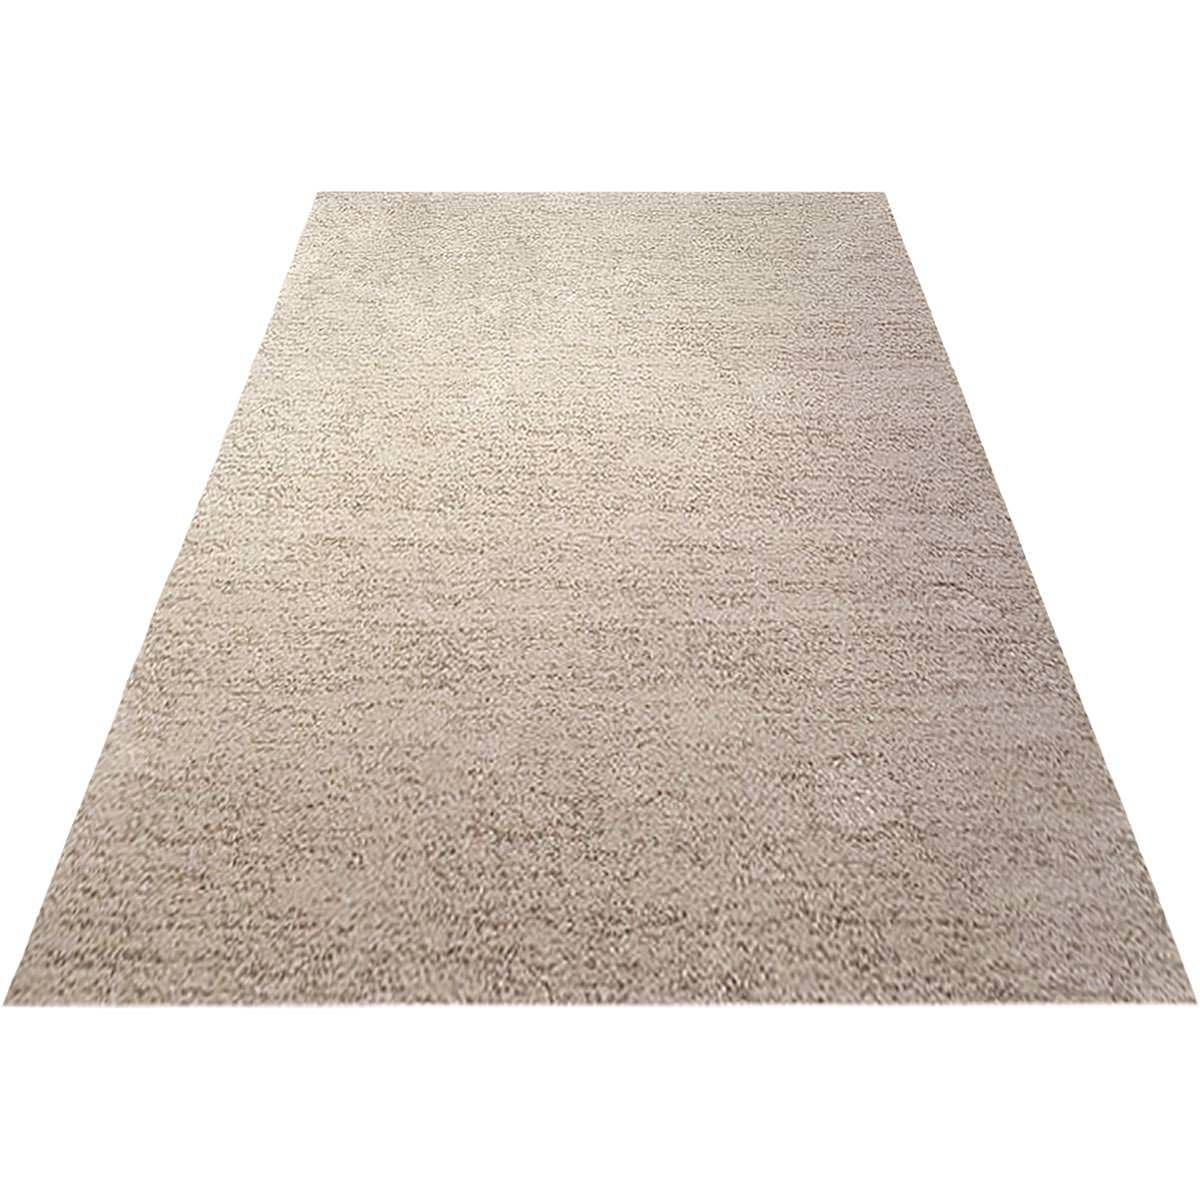 Monaco Rug 01 Light Beige 2